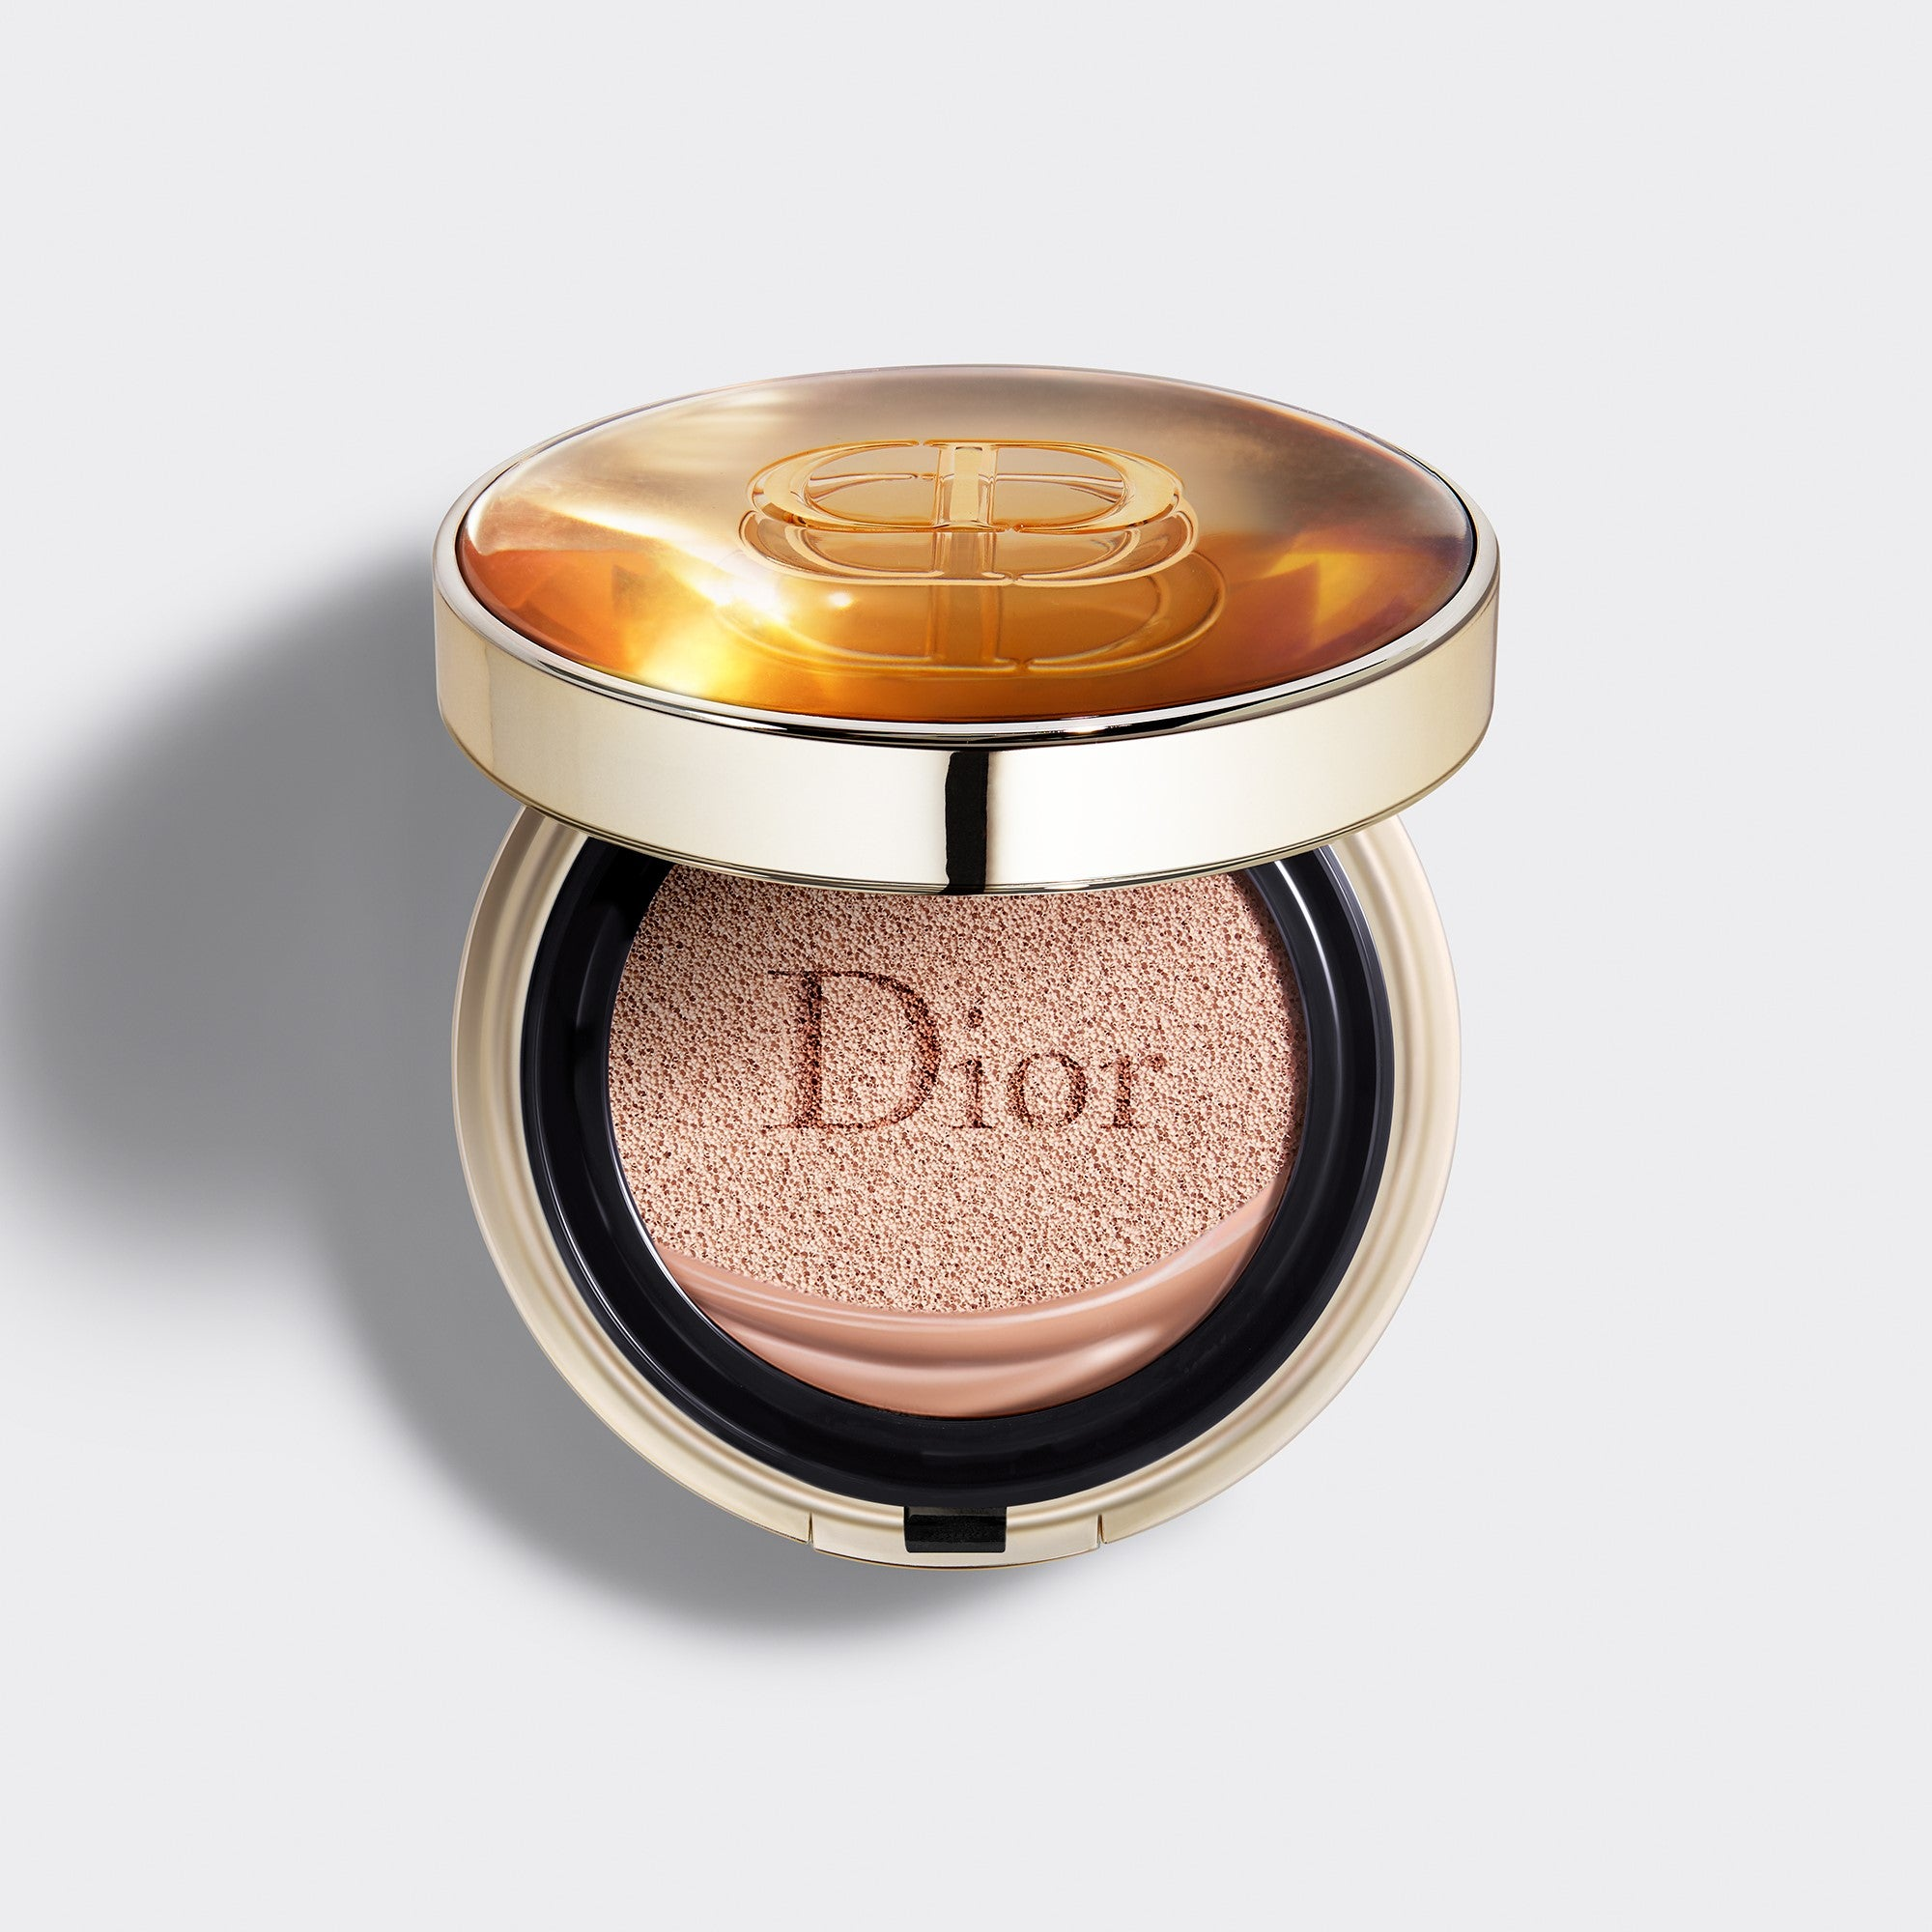 DIOR PRESTIGE | Cushion Foundation - Le Cushion Teint de Rose